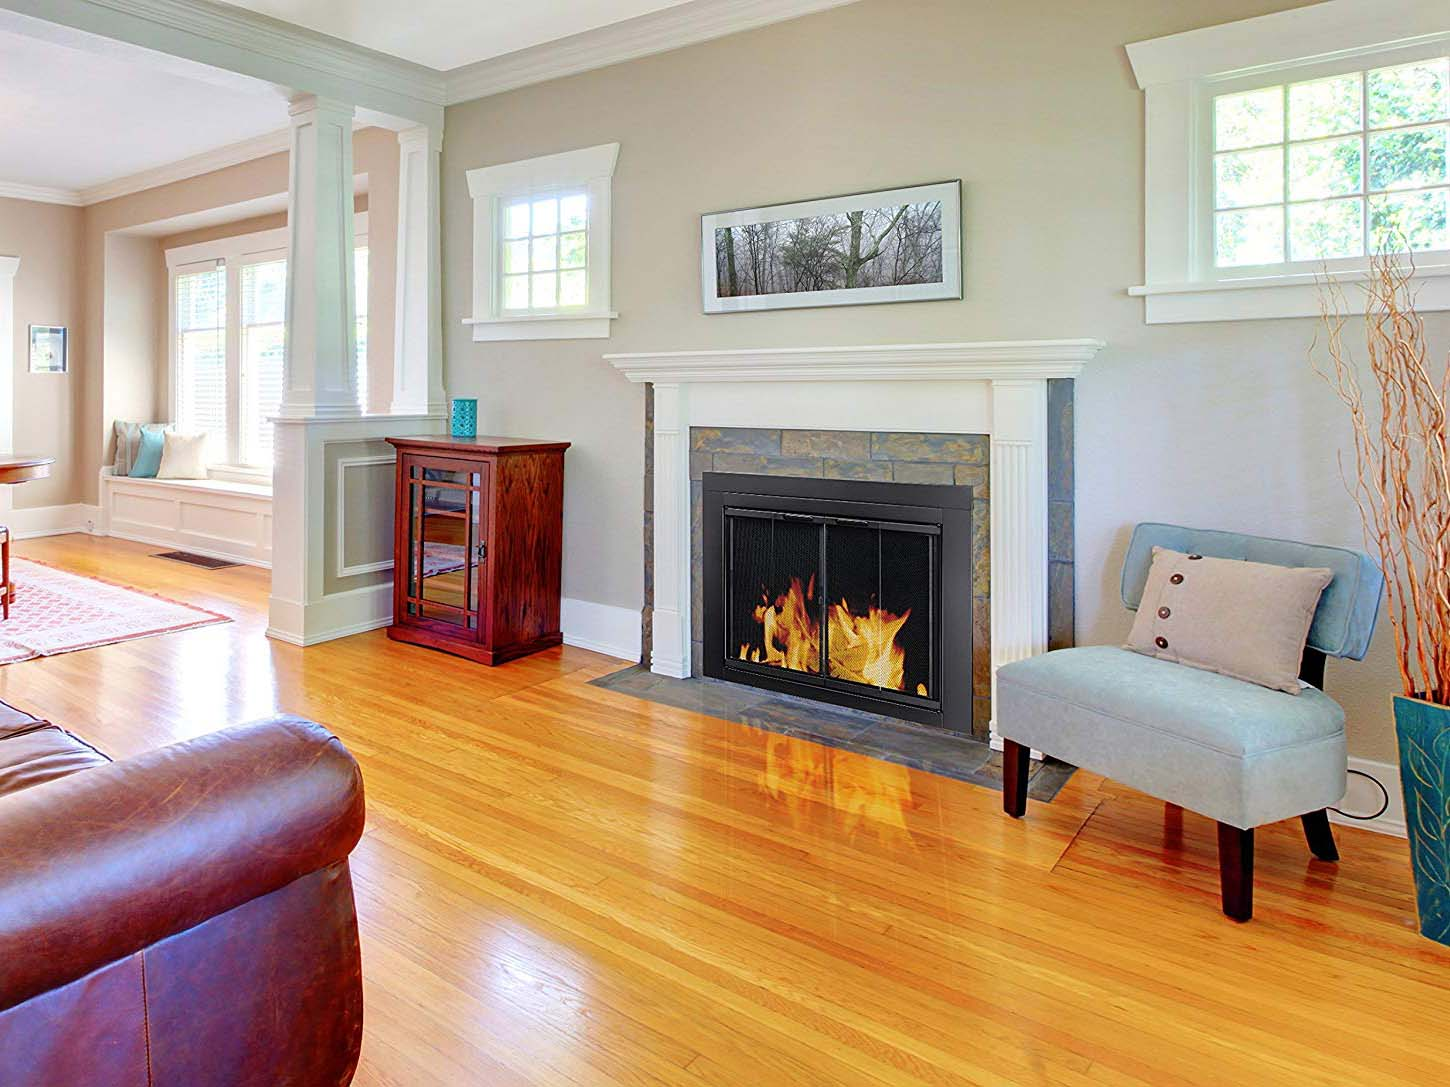 3 Ways to Prevent Fireplace Accidents